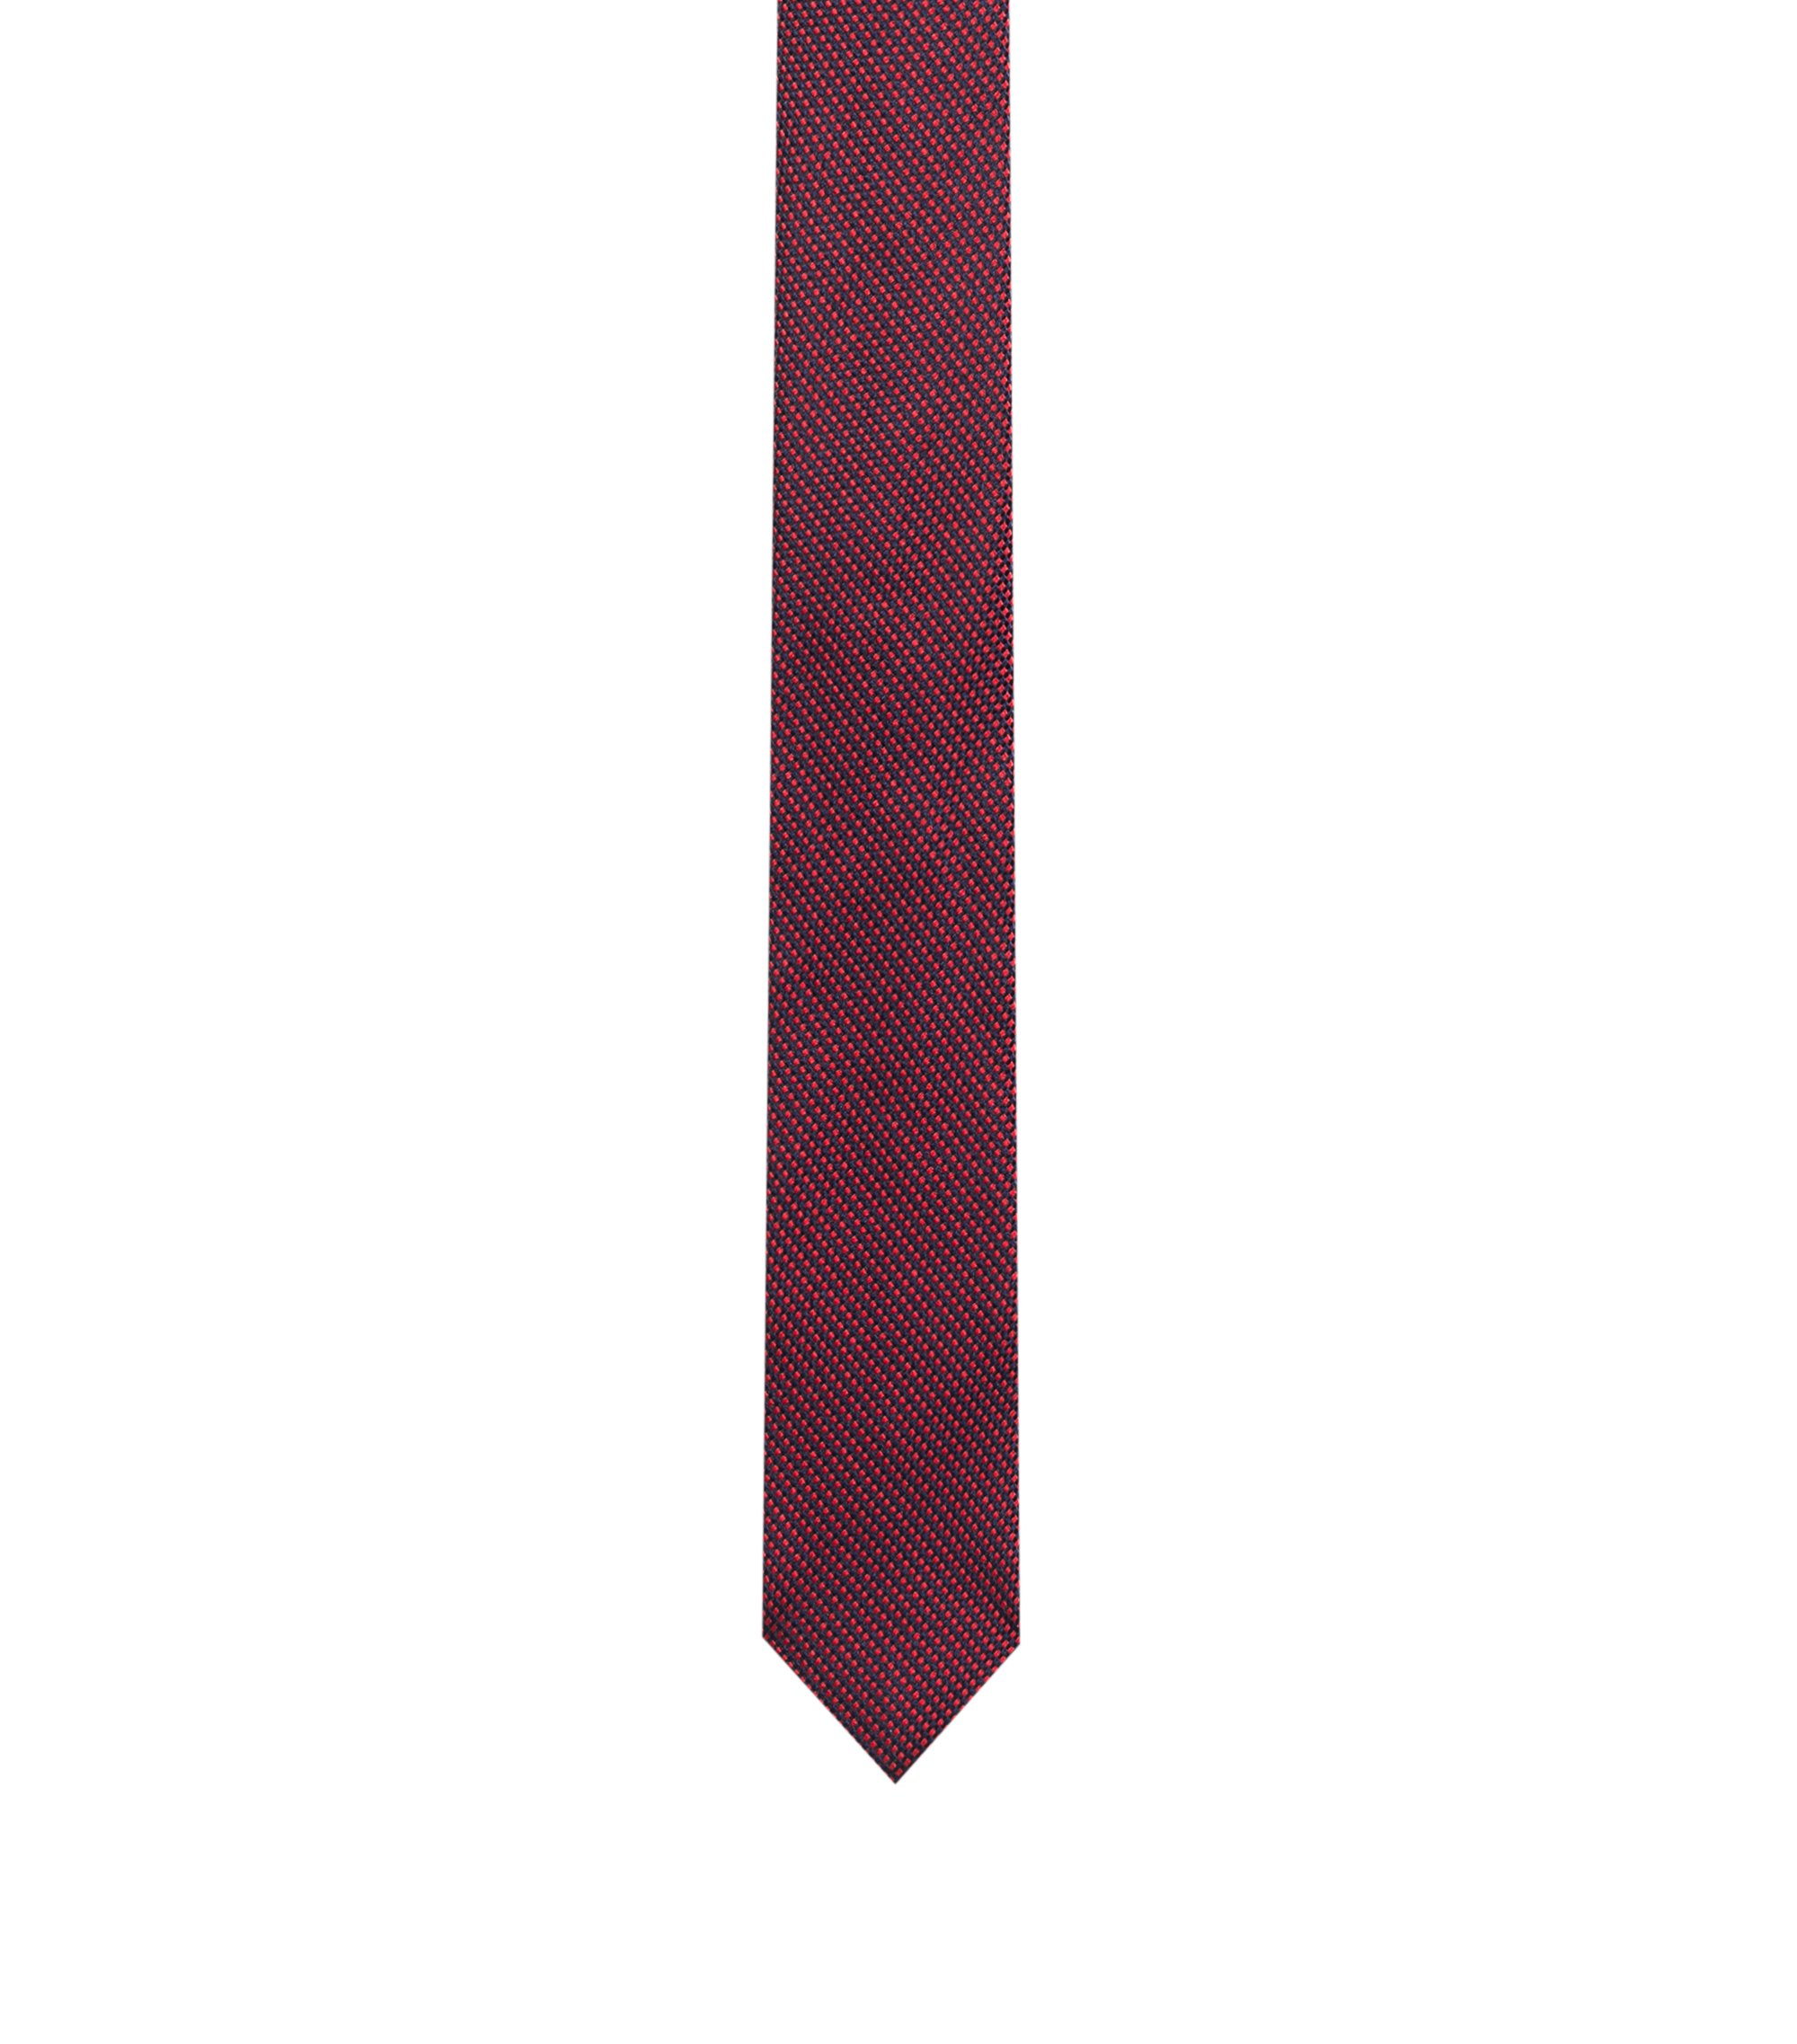 Silk tie in a micro-patterned jacquard, Patterned